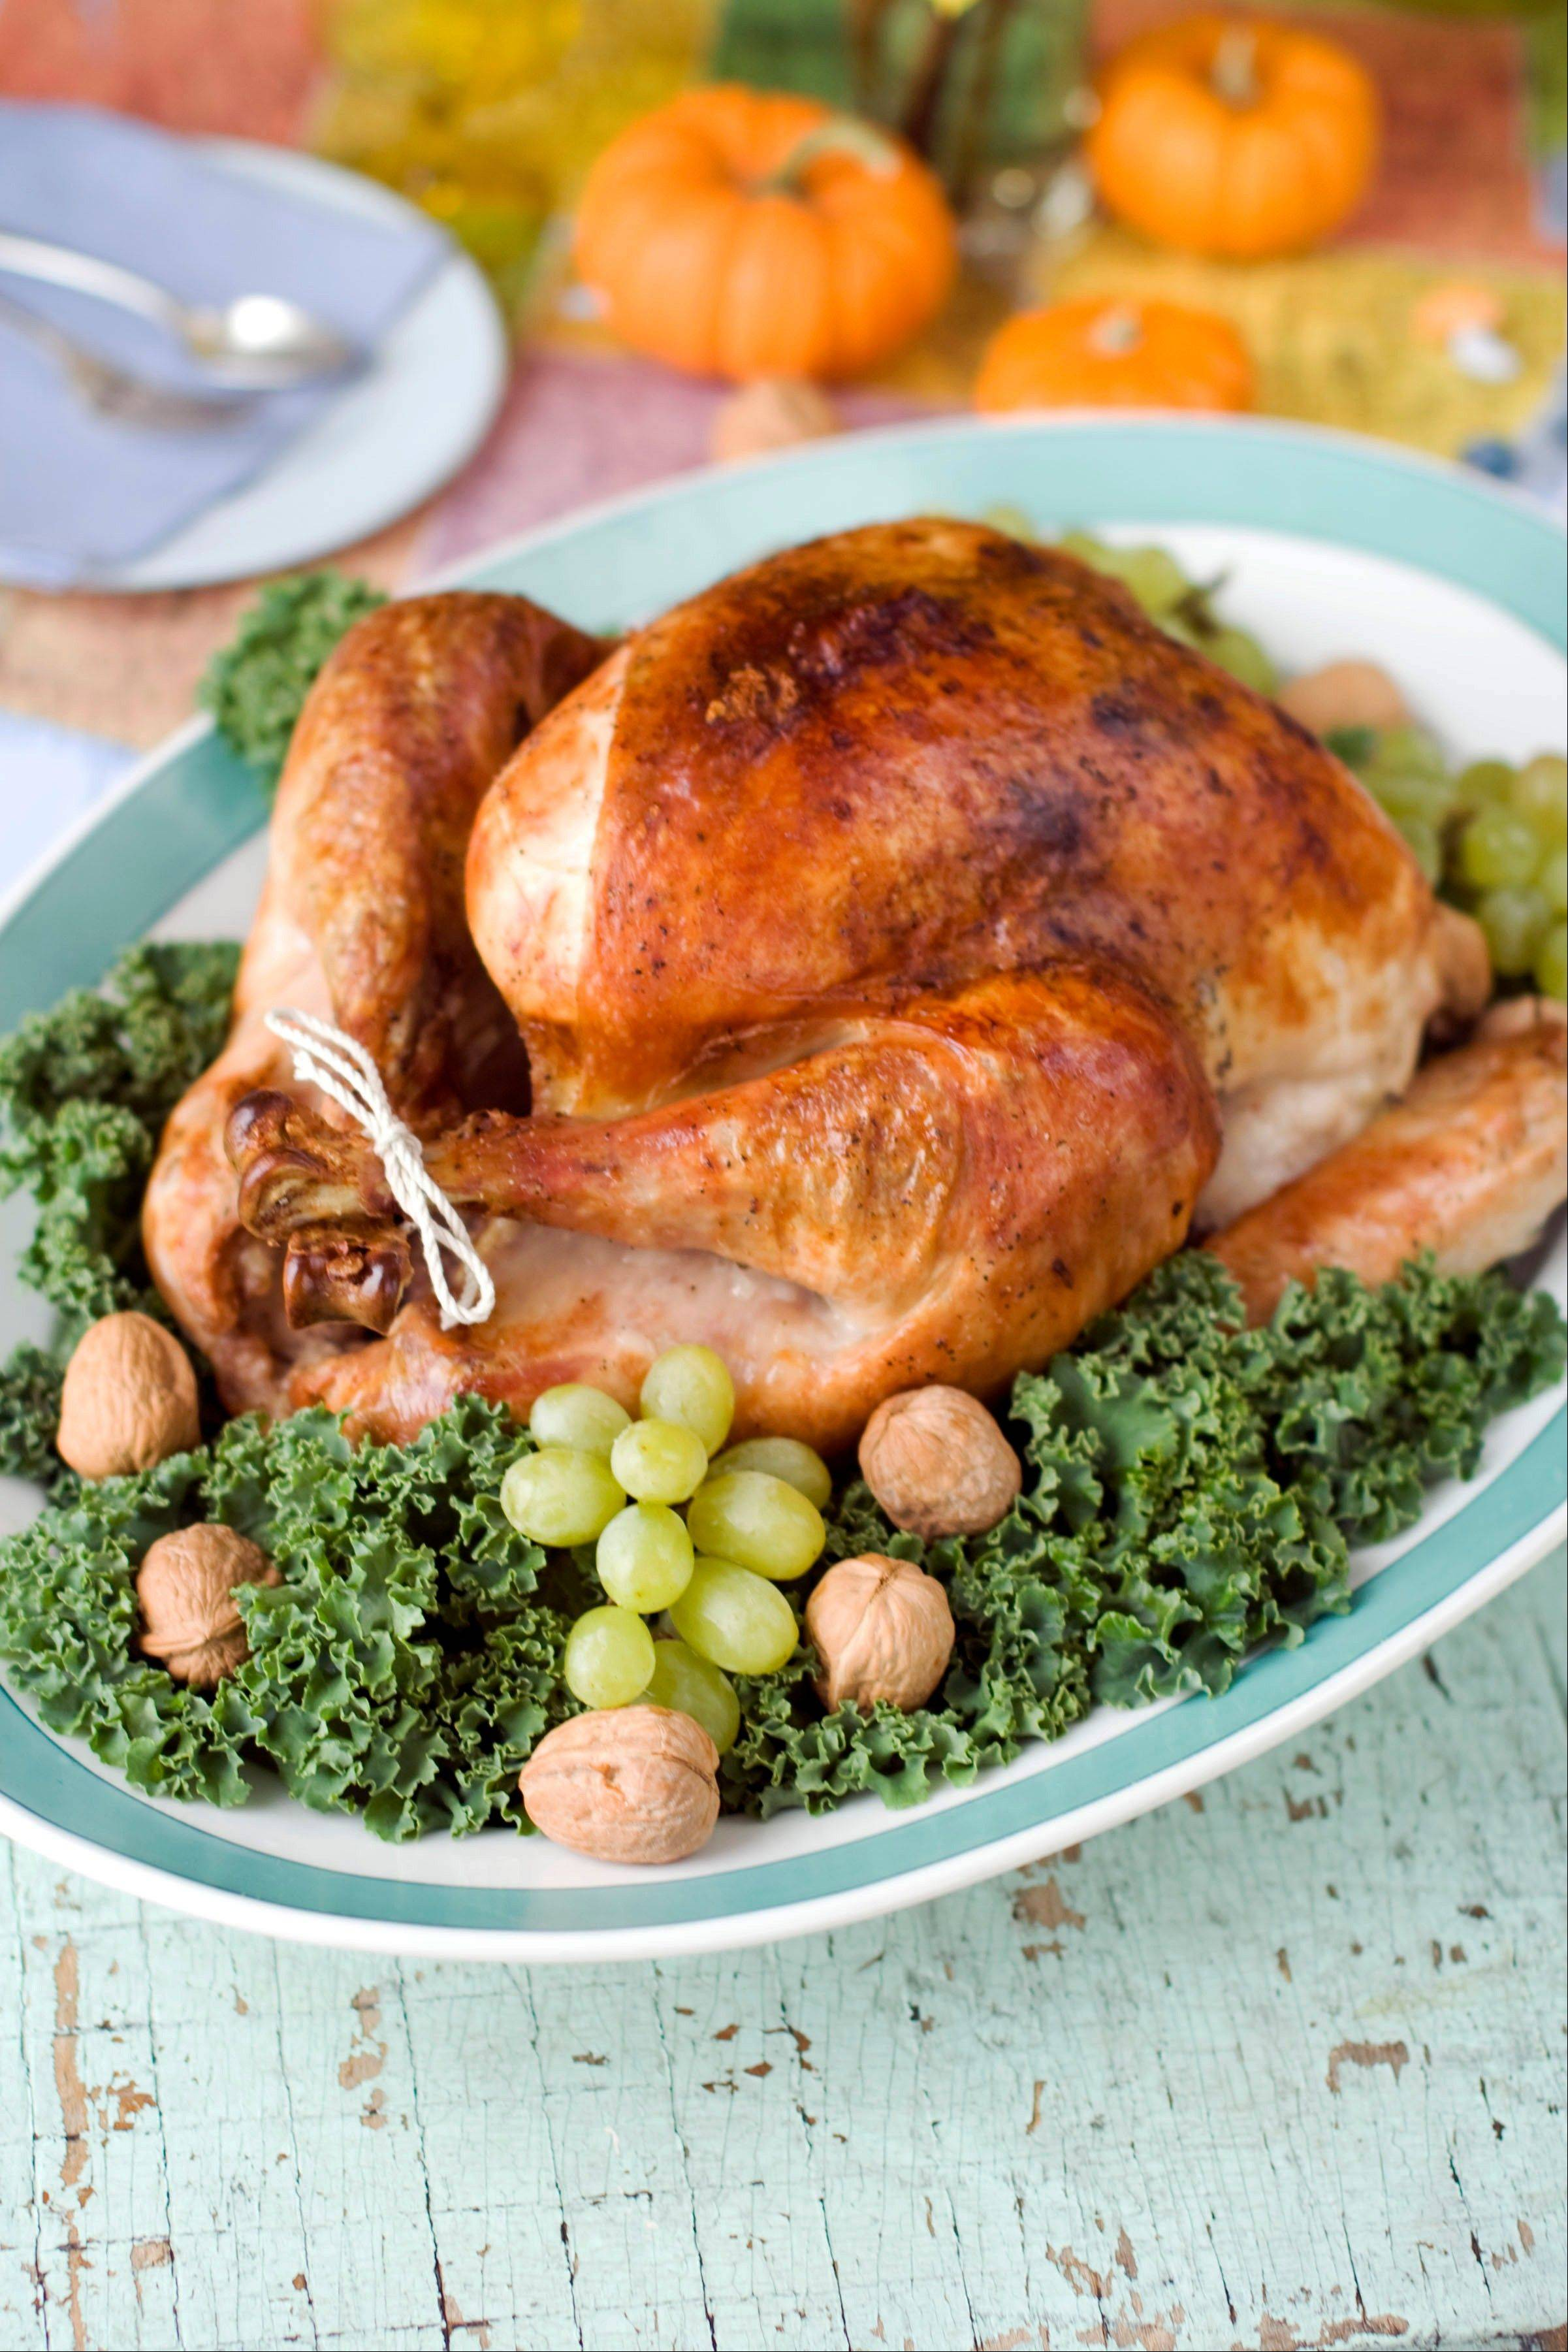 Keeping the turkey simply flavored is one key to a family-friendly Thanksgiving feast.